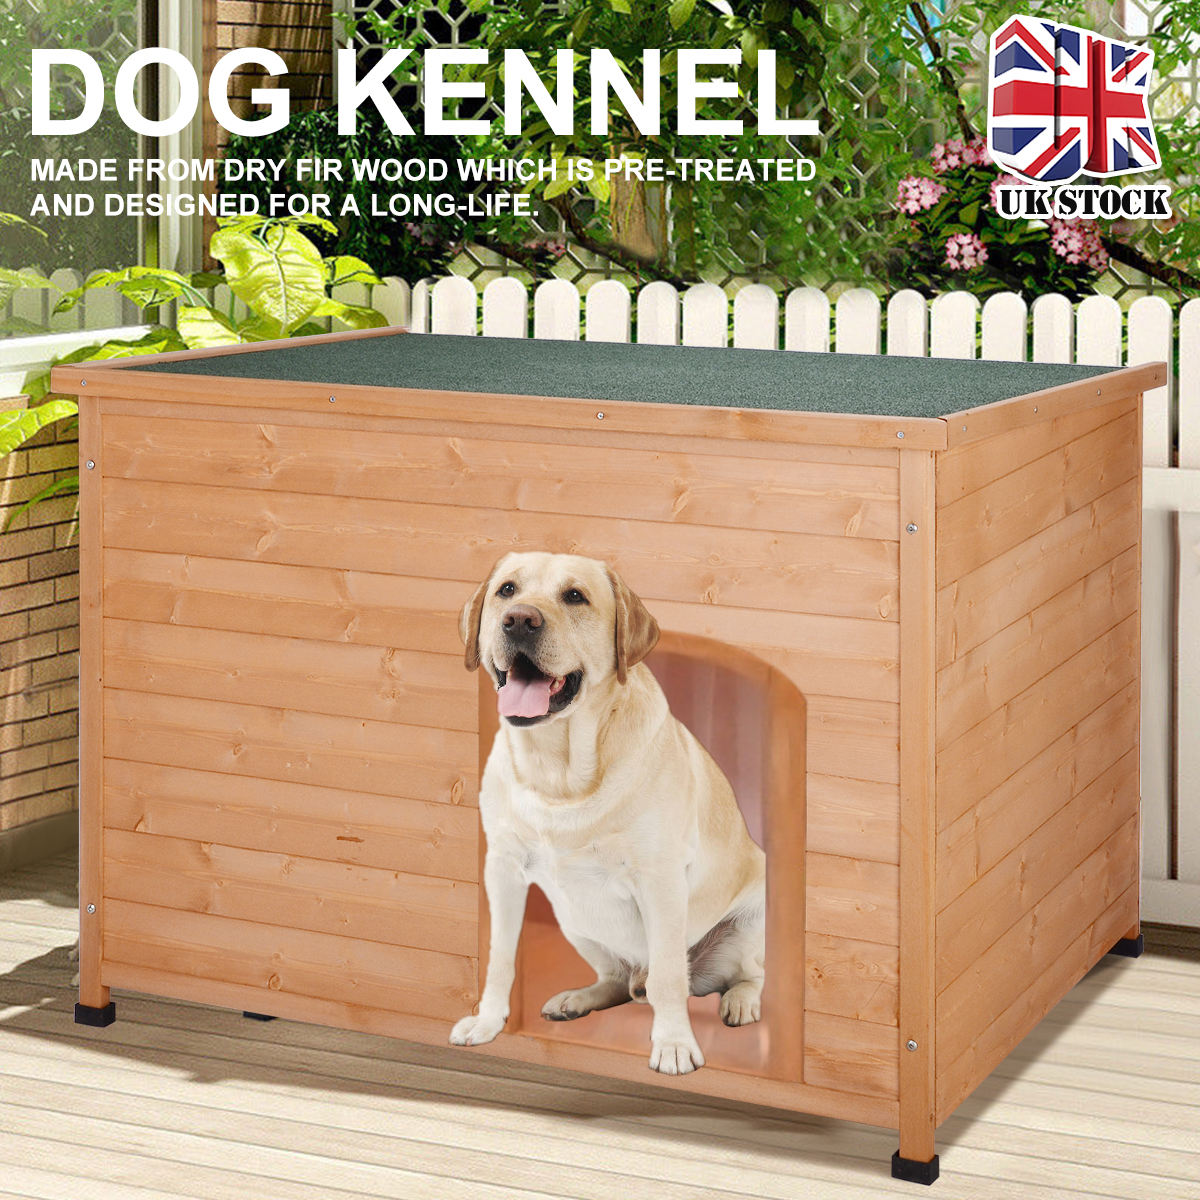 <font><b>Wooden</b></font> Pet <font><b>Dog</b></font> House <font><b>Kennel</b></font> Outdoor & Indoor Bed Wood Home Waterproof Hinged Flat Roof Removable <font><b>Dogs</b></font> <font><b>Kennel</b></font> Big 116*79*81cm image